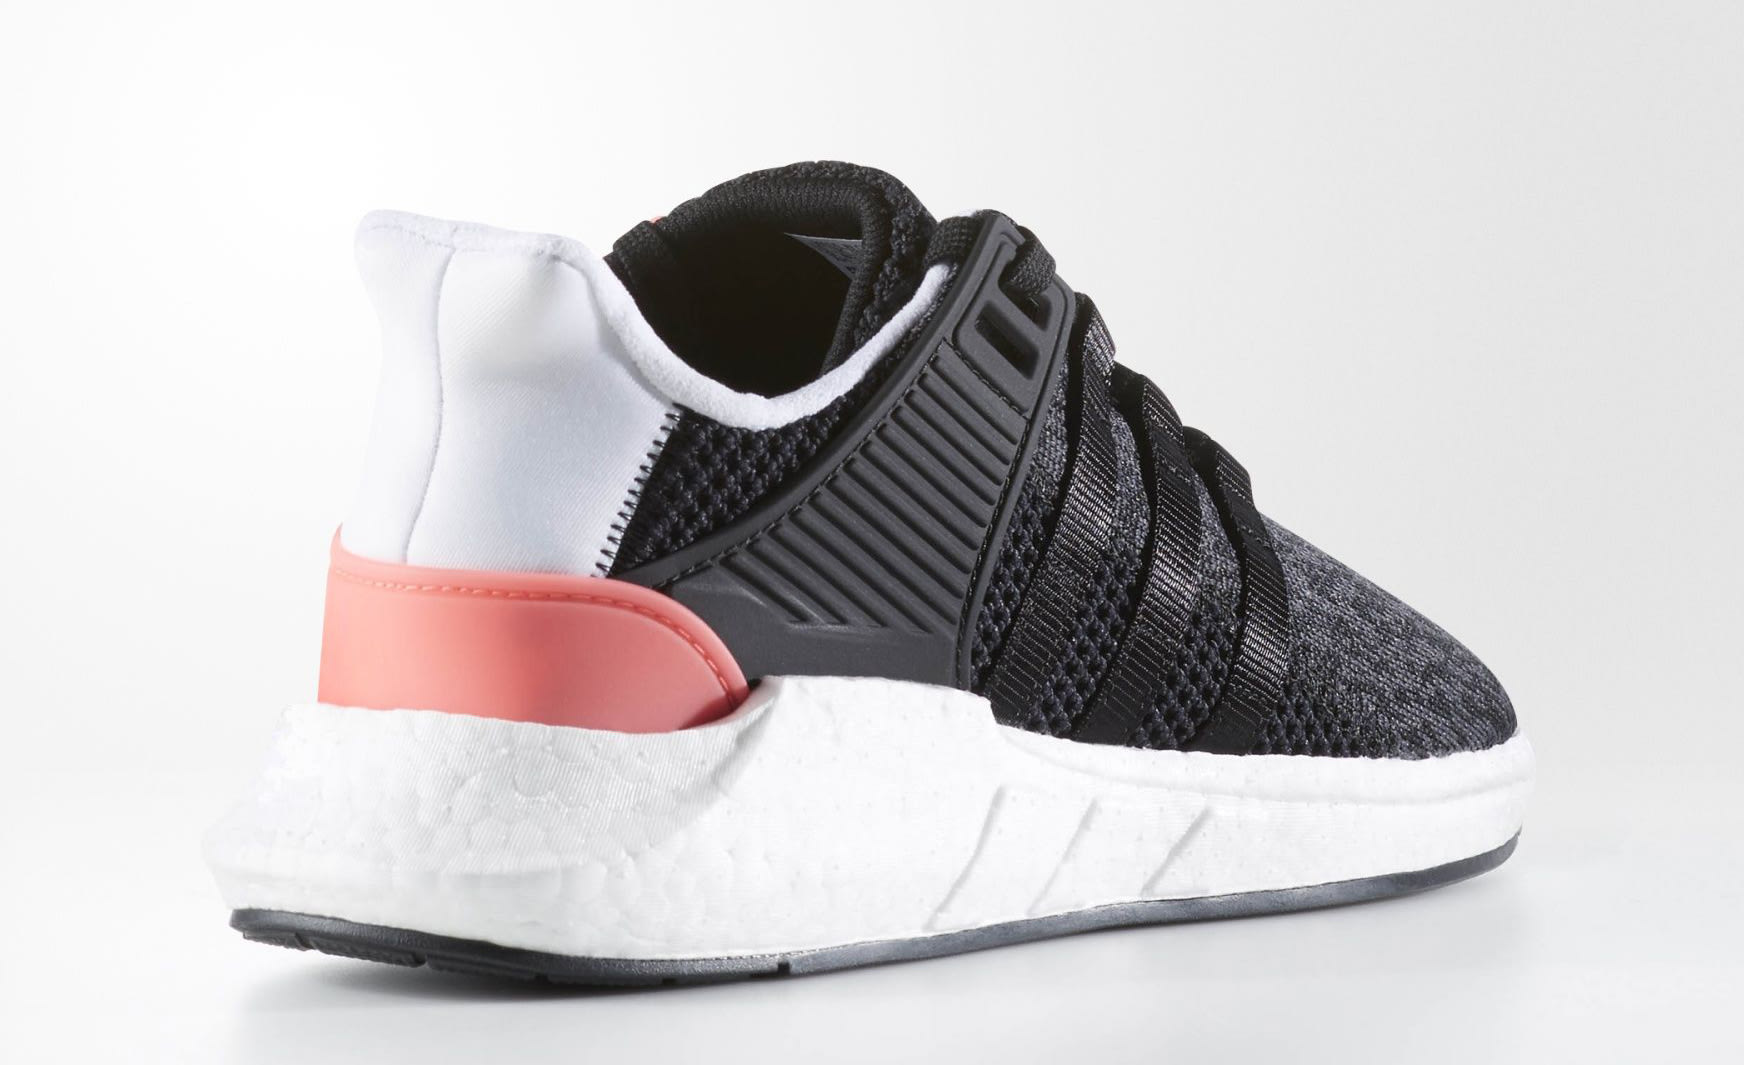 adidas EQT Equipment Support ADV PK Primeknit Ba7496